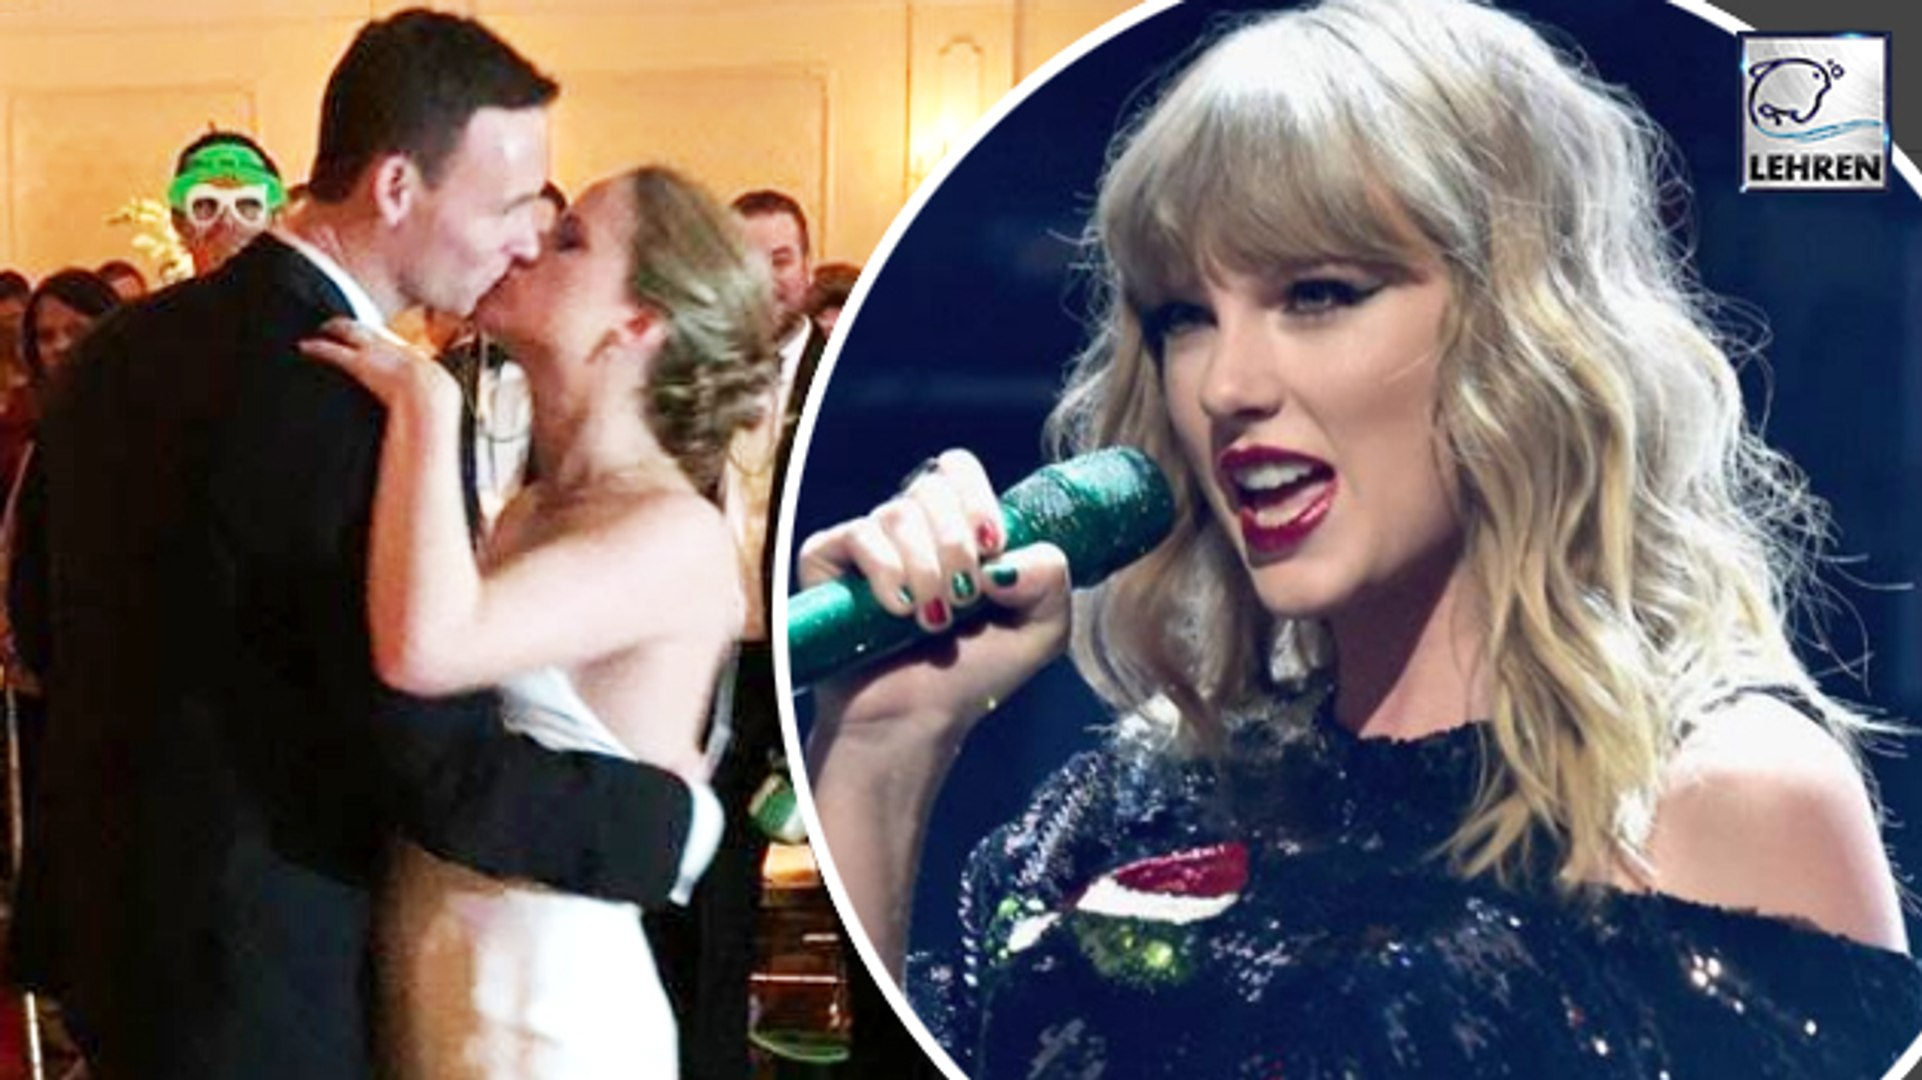 Taylor Swift Surprises The Bride & Groom At Their Wedding In An Epic Way